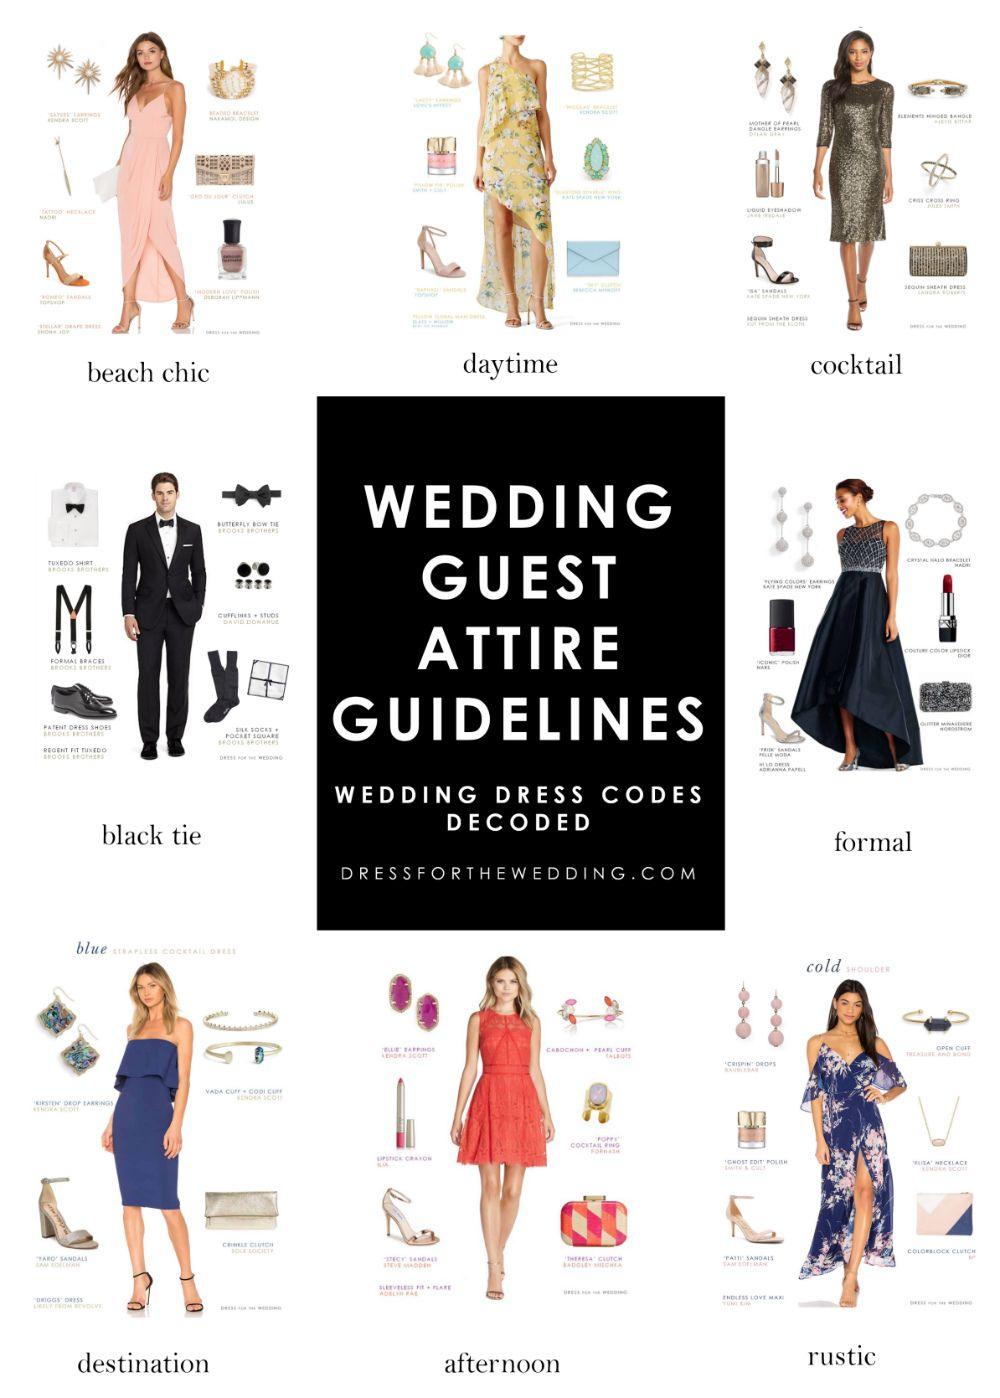 Wedding Guest Dresses For June And July Weddings Dress For The Wedding Cocktail Dress Wedding Wedding Attire Guest Wedding Guest Dress Summer